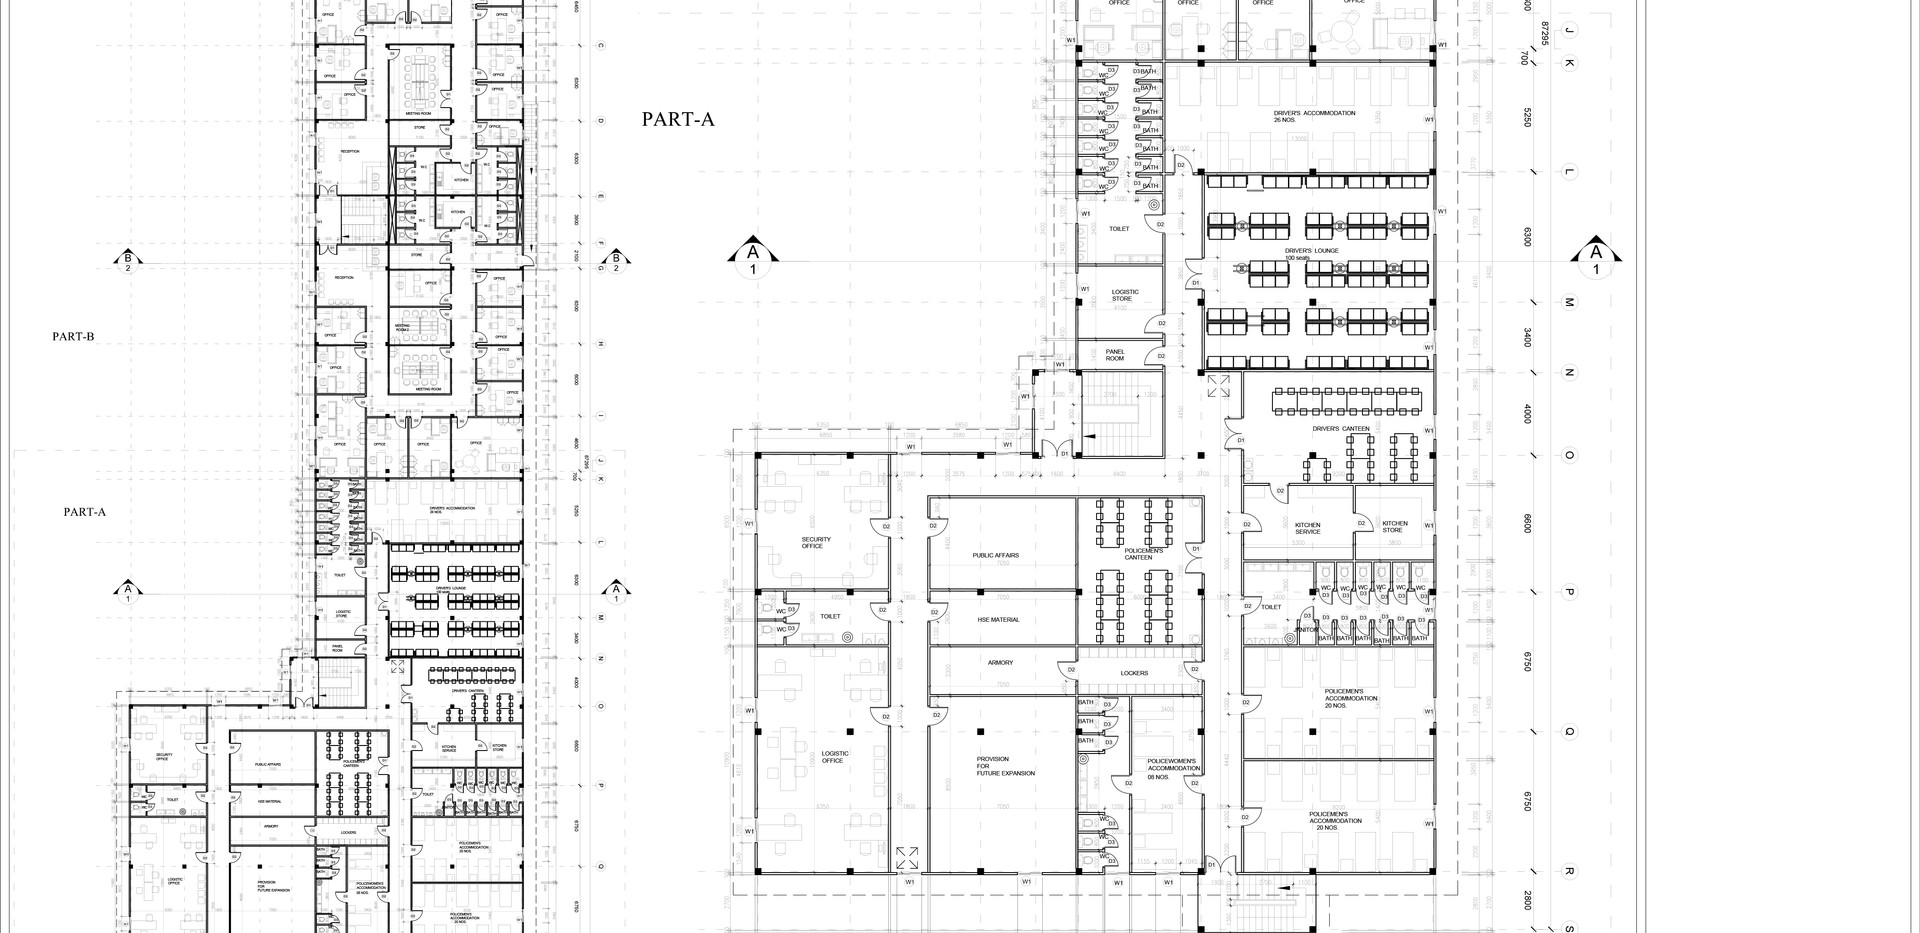 TUCN ARCHITECTURAL DRAWING (dragged) 2.jpg